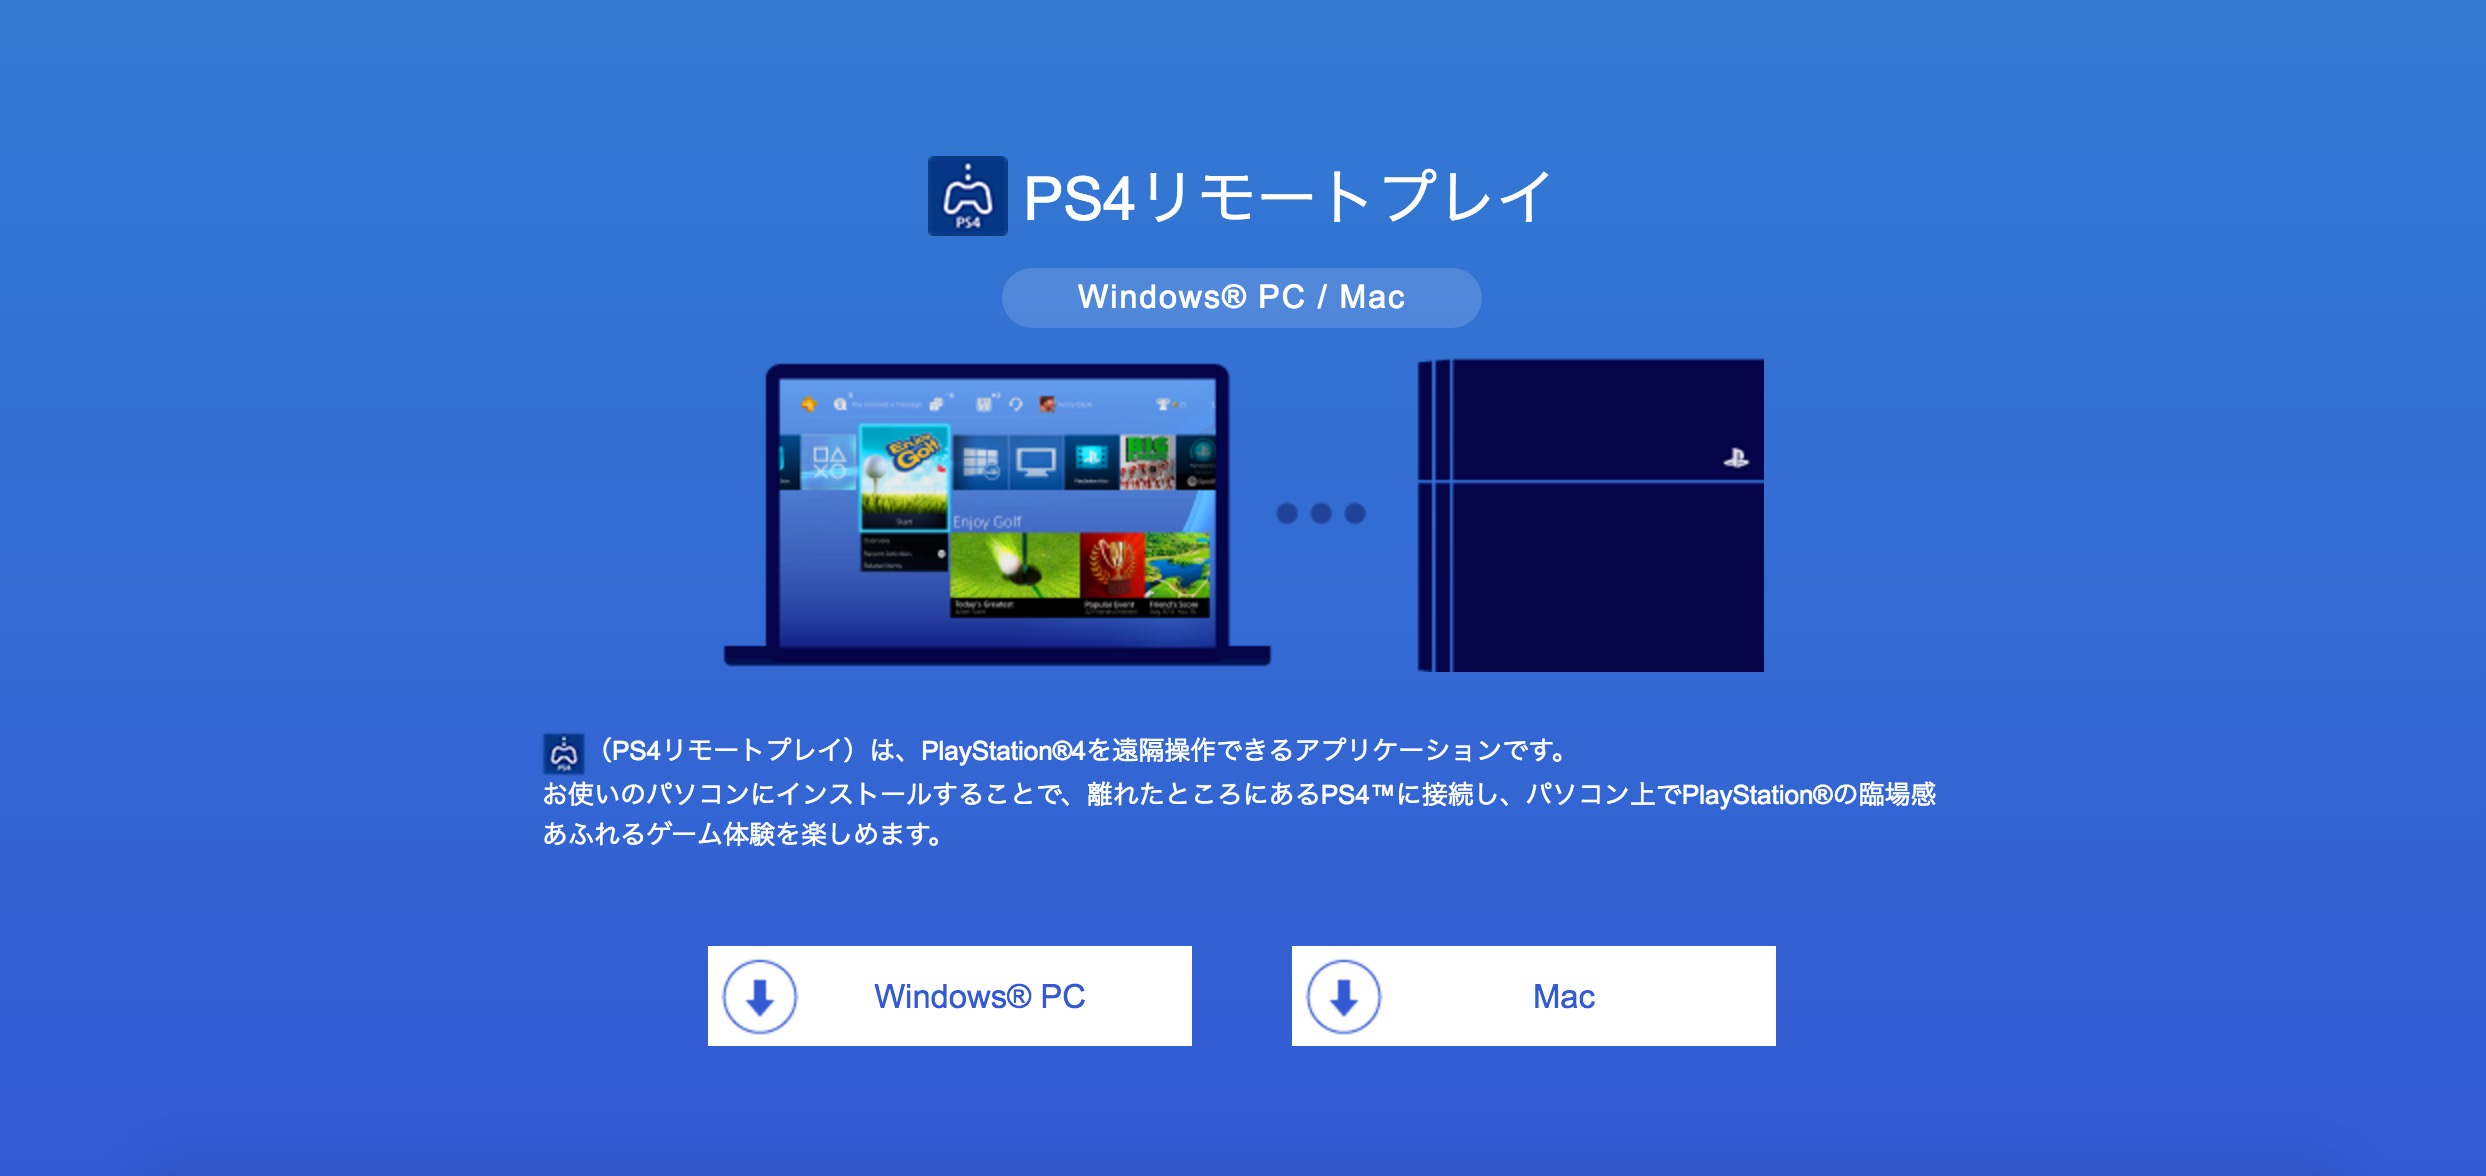 How to play playstation 4 game by remoto play from pc 1